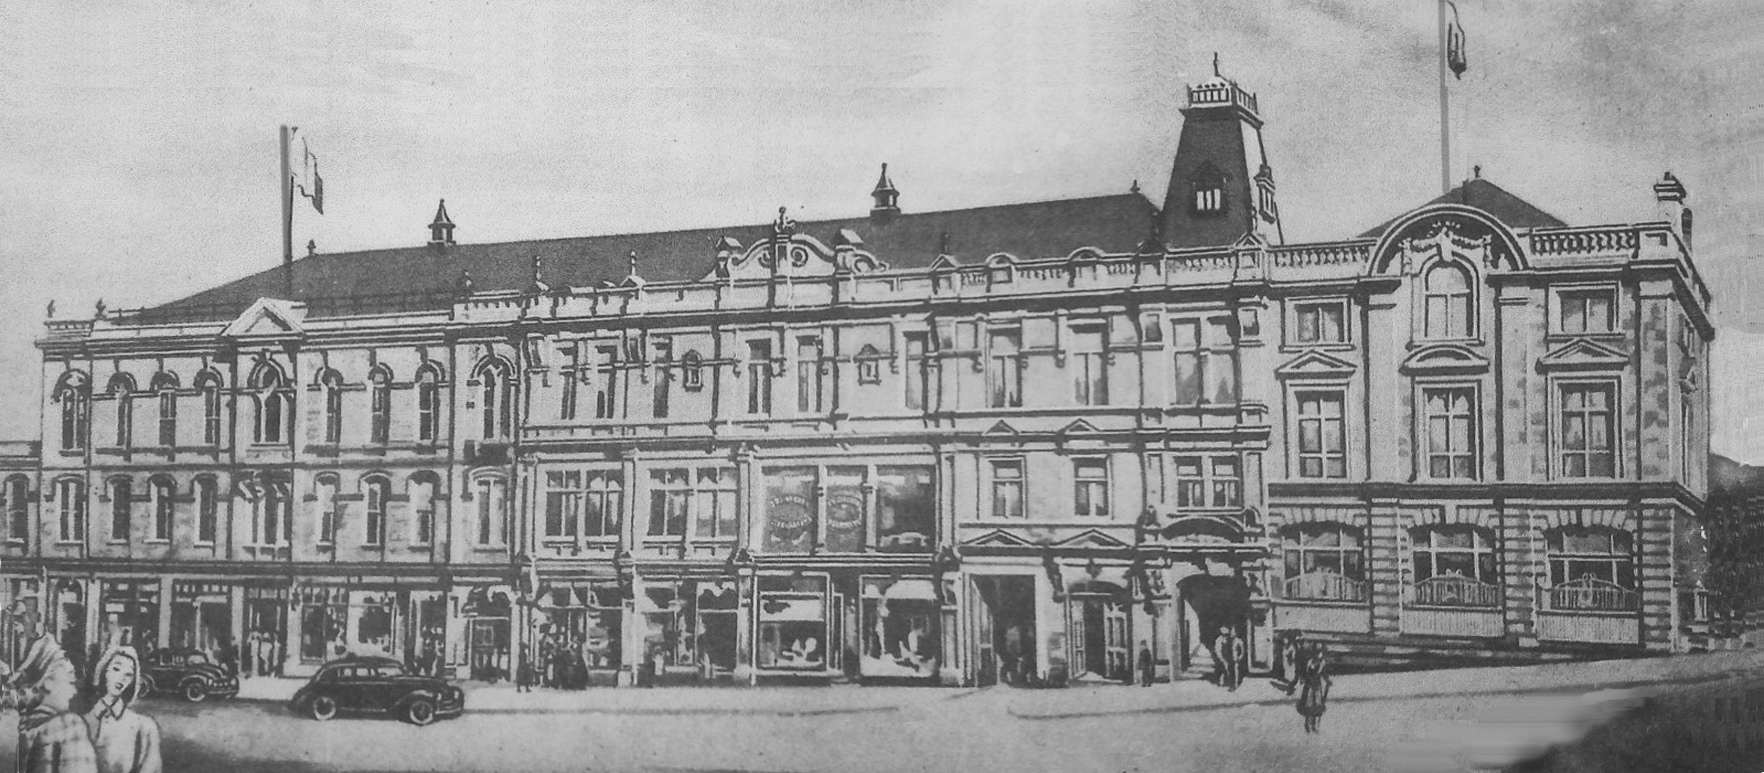 Memories of the Co-op which was at heart of life in Darwen for 120 years